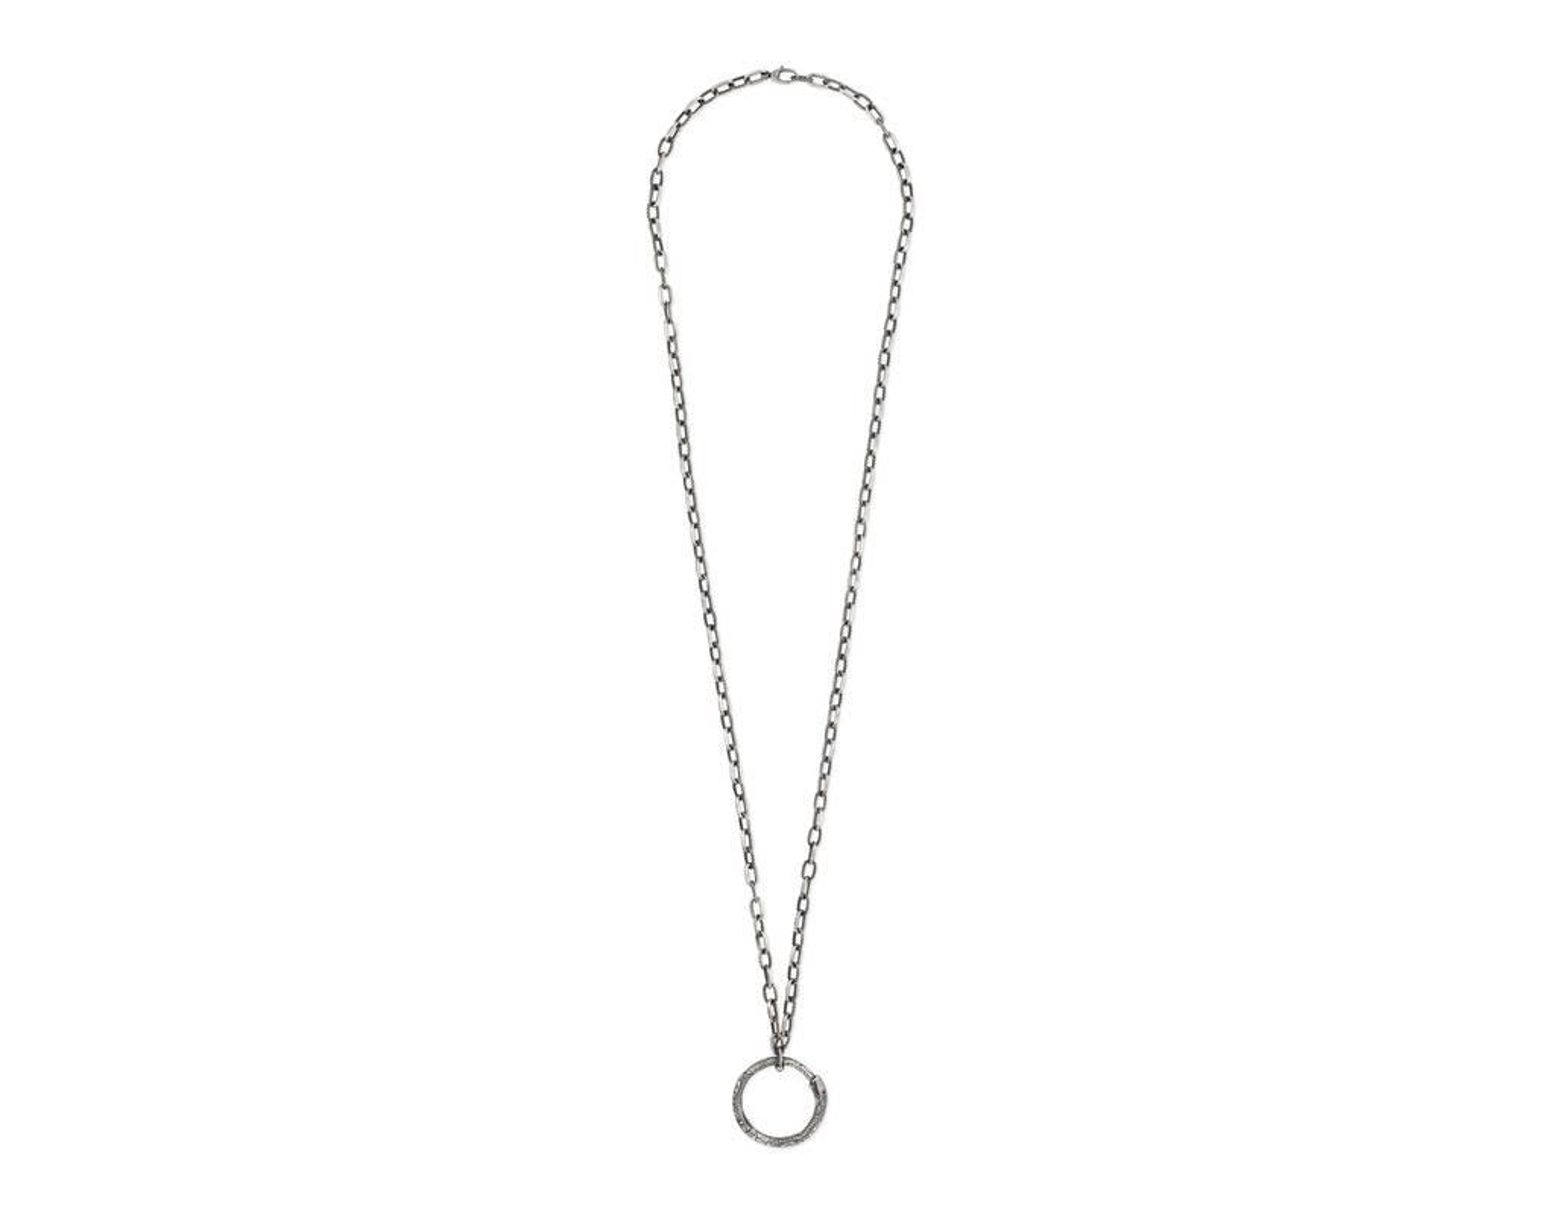 82babcc61 Gucci Ouroboros Pendant Necklace in Metallic - Lyst